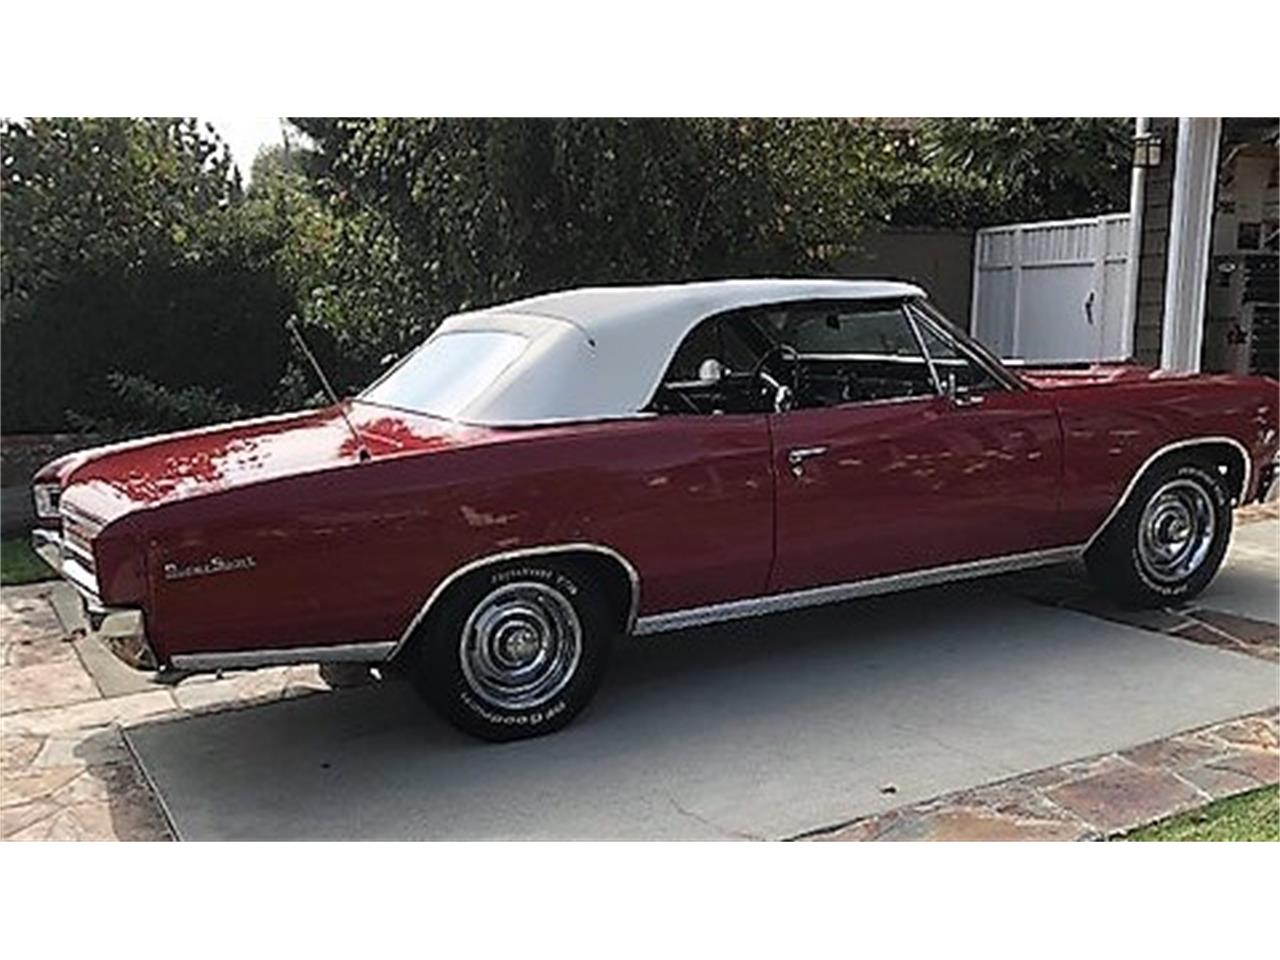 Large Picture of Classic 1966 Chevrolet Chevelle Malibu SS - $45,000.00 Offered by a Private Seller - OW1I